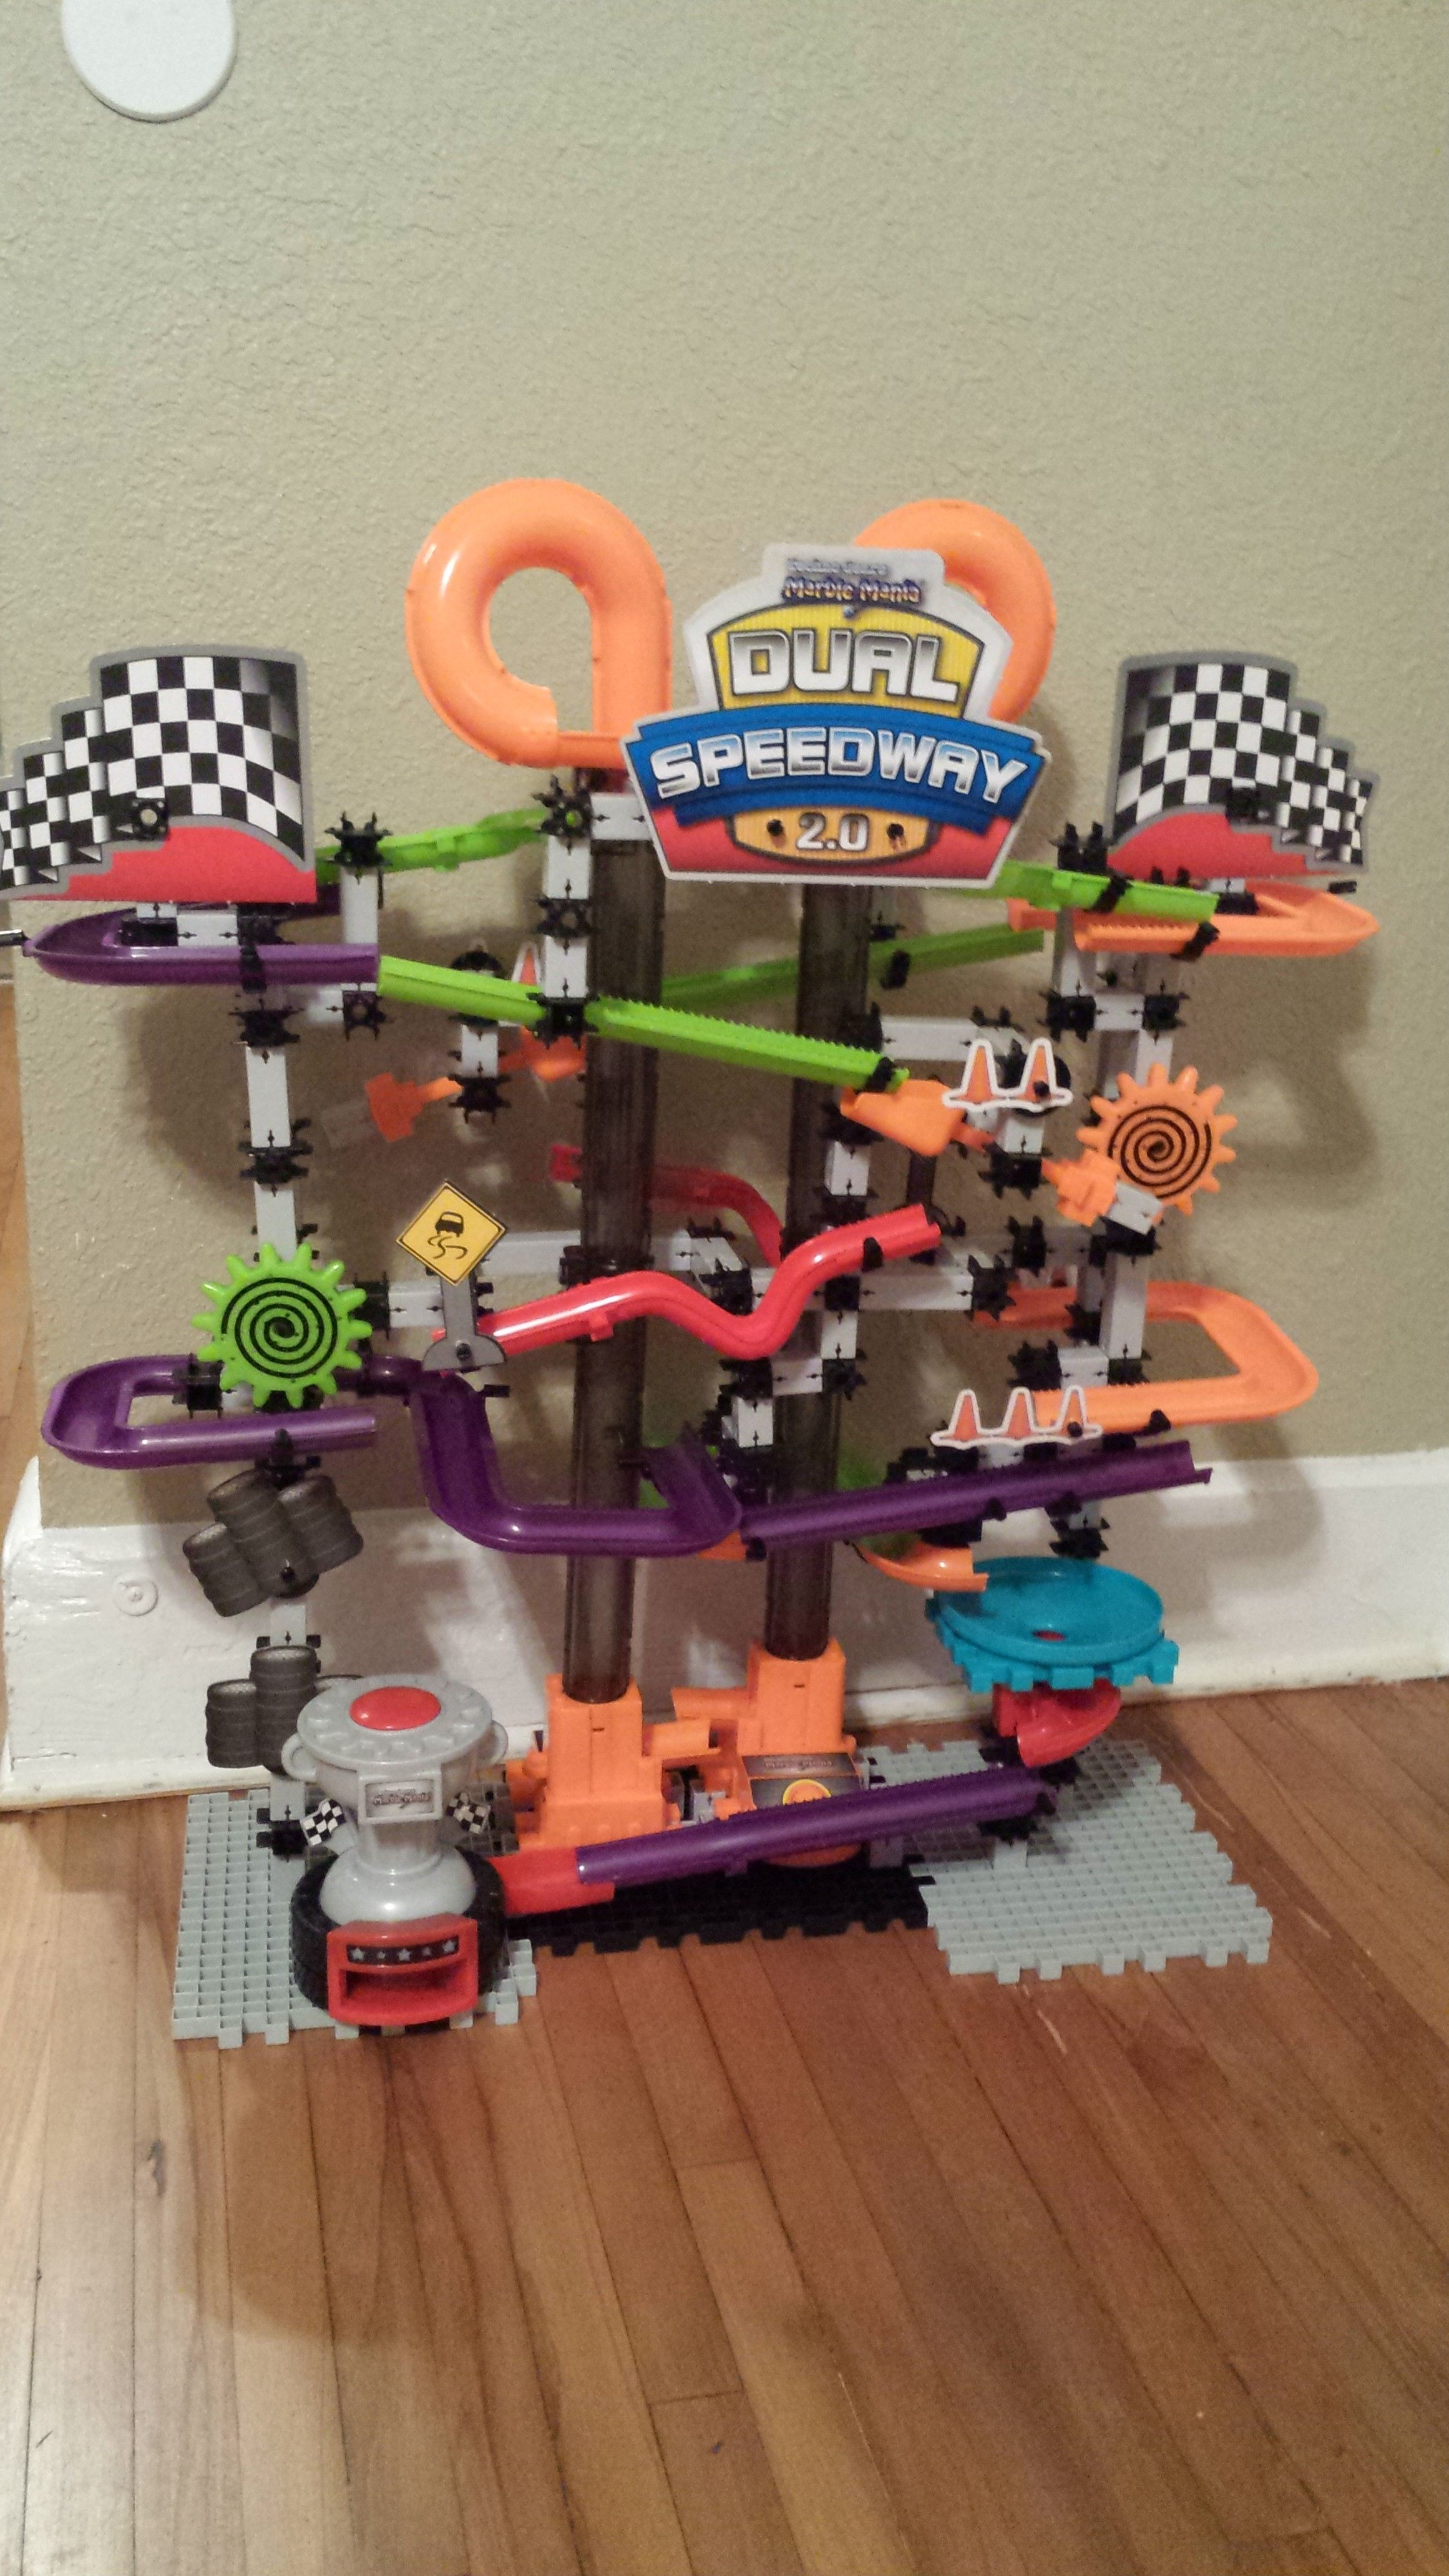 Techno Gears Marble Mania Dual Speedway 2 0 Review marblemania